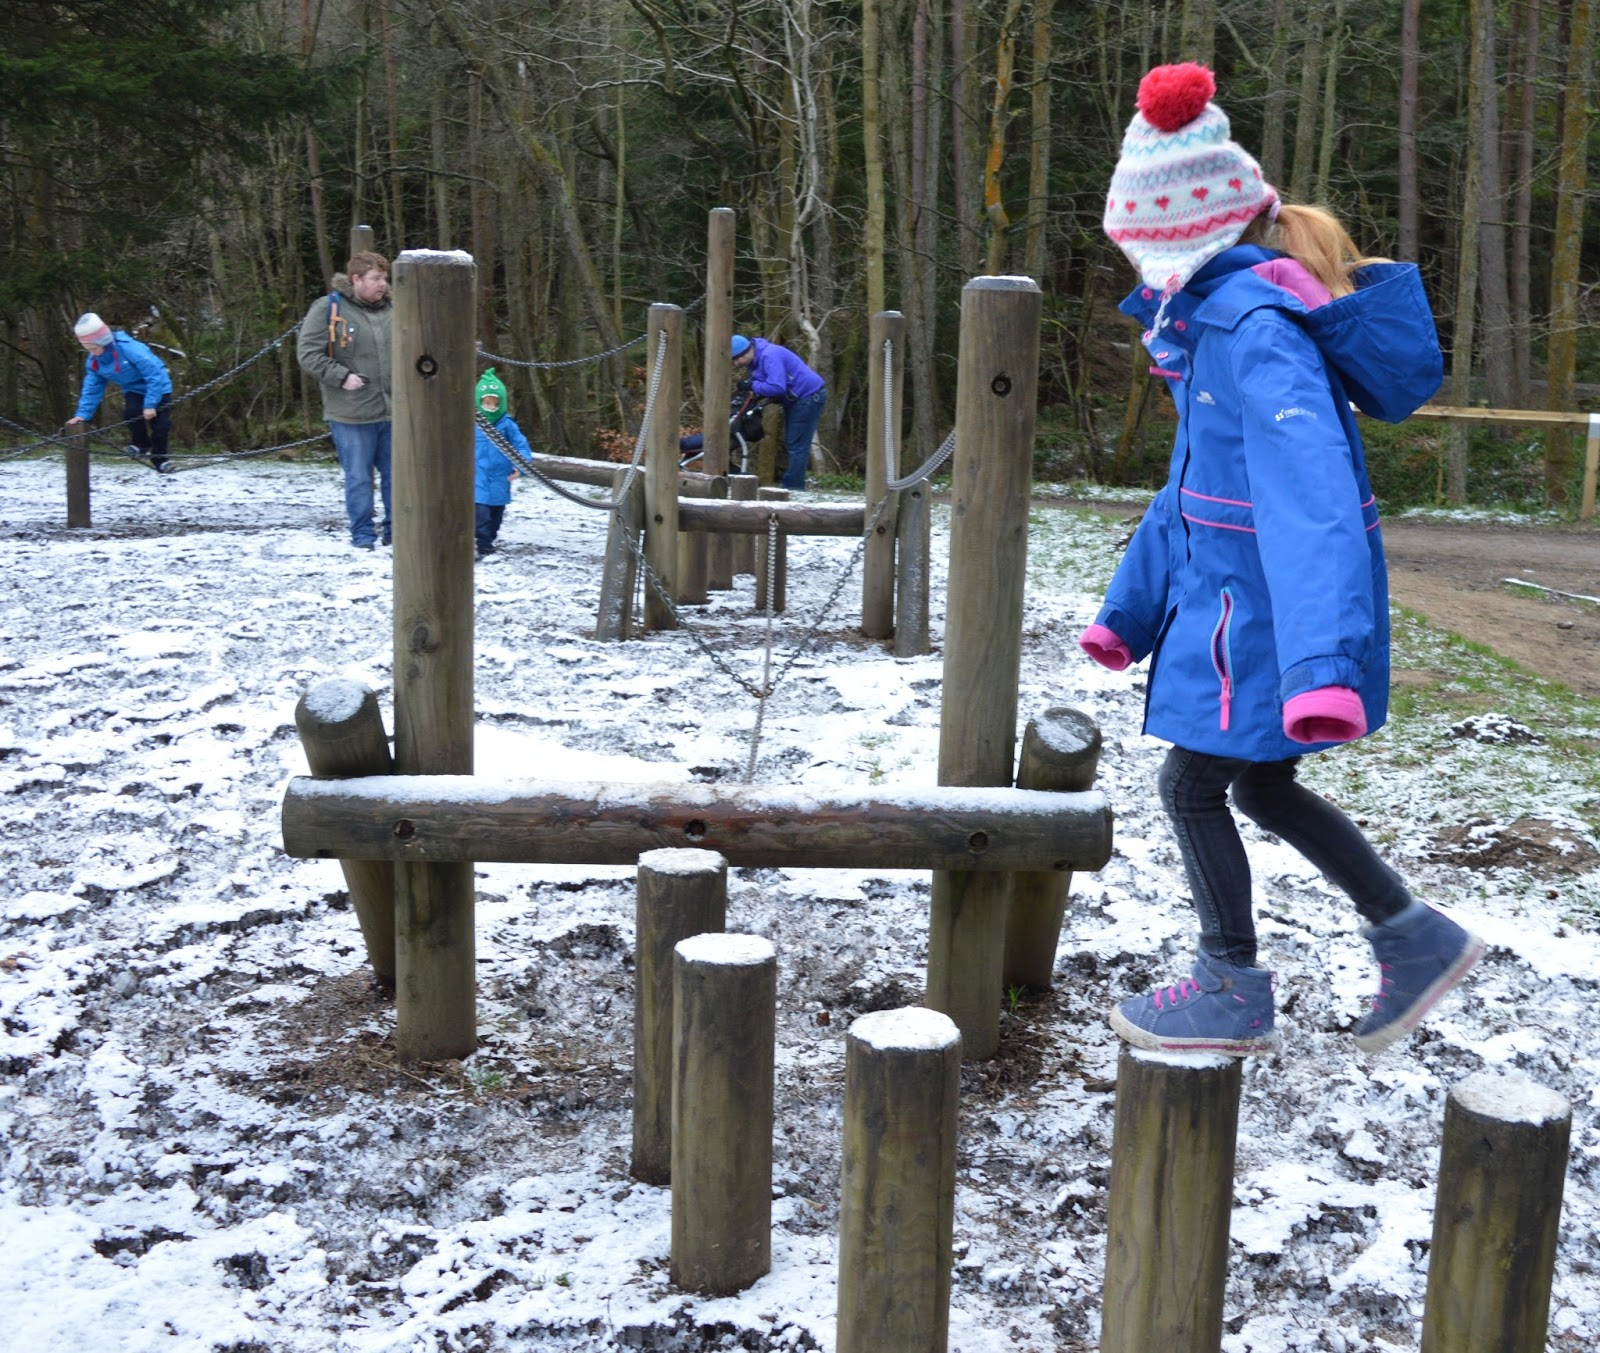 10 of the best family walks in North East England with a cafe and play park nearby - Hamsterley Forest